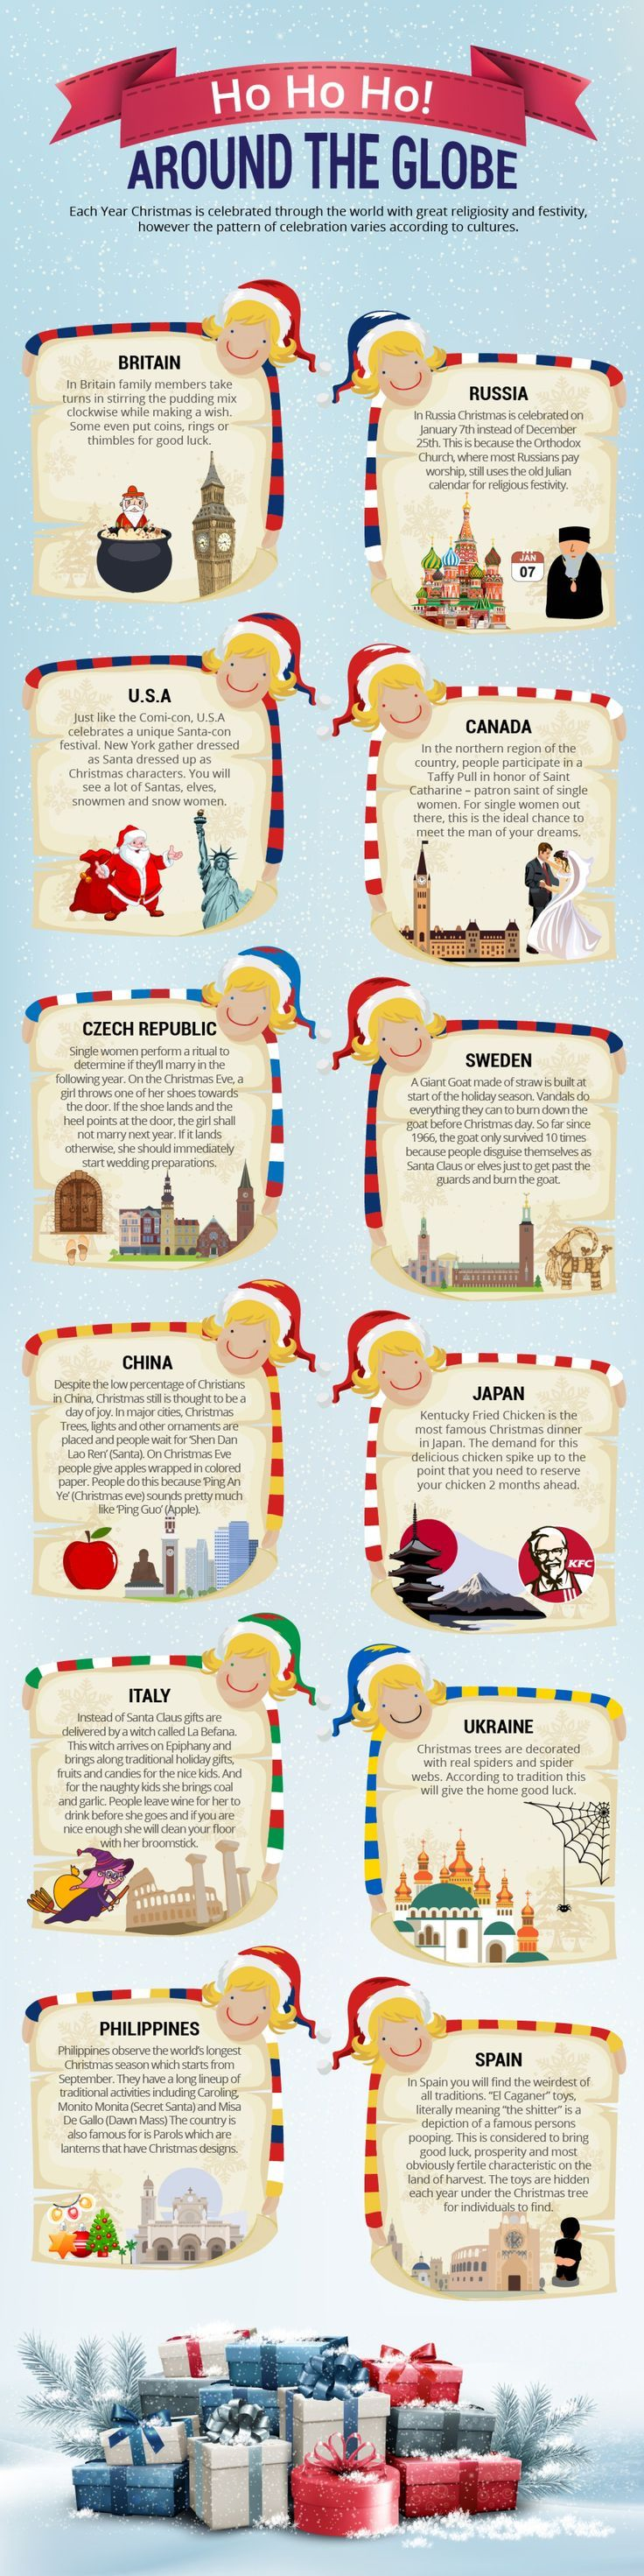 Christmas in Russia Infographic